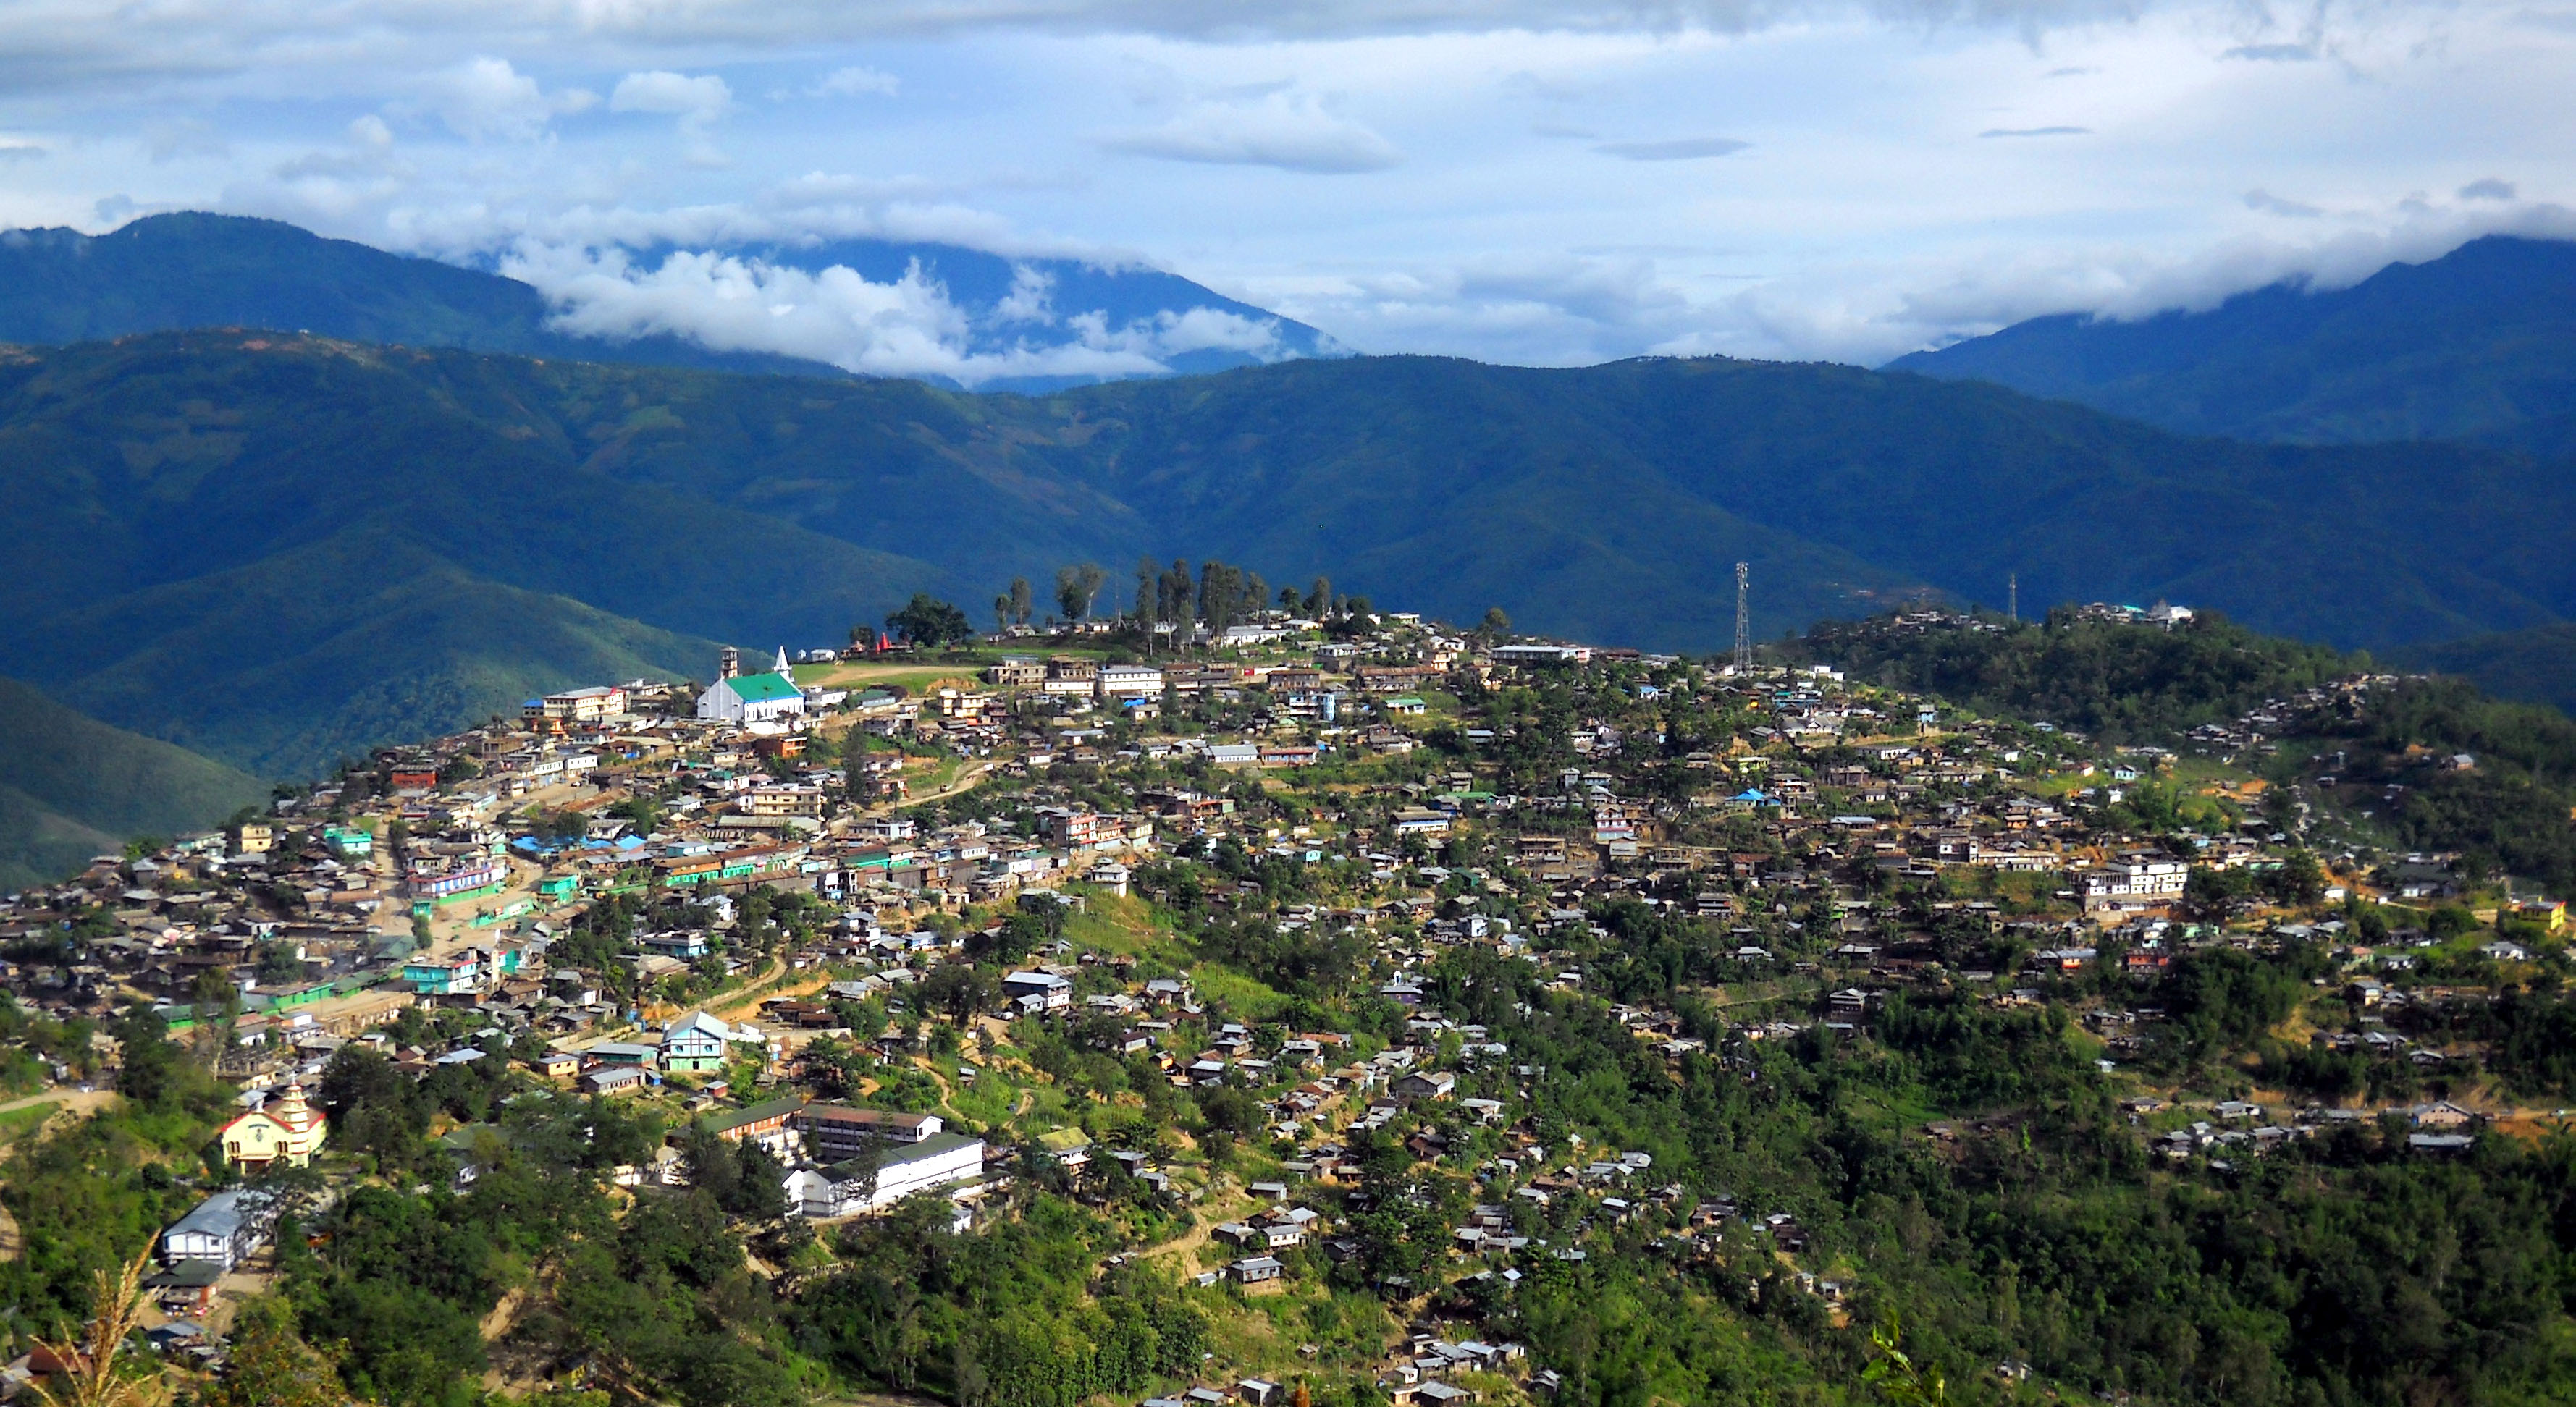 Aerial View of Kiphire District